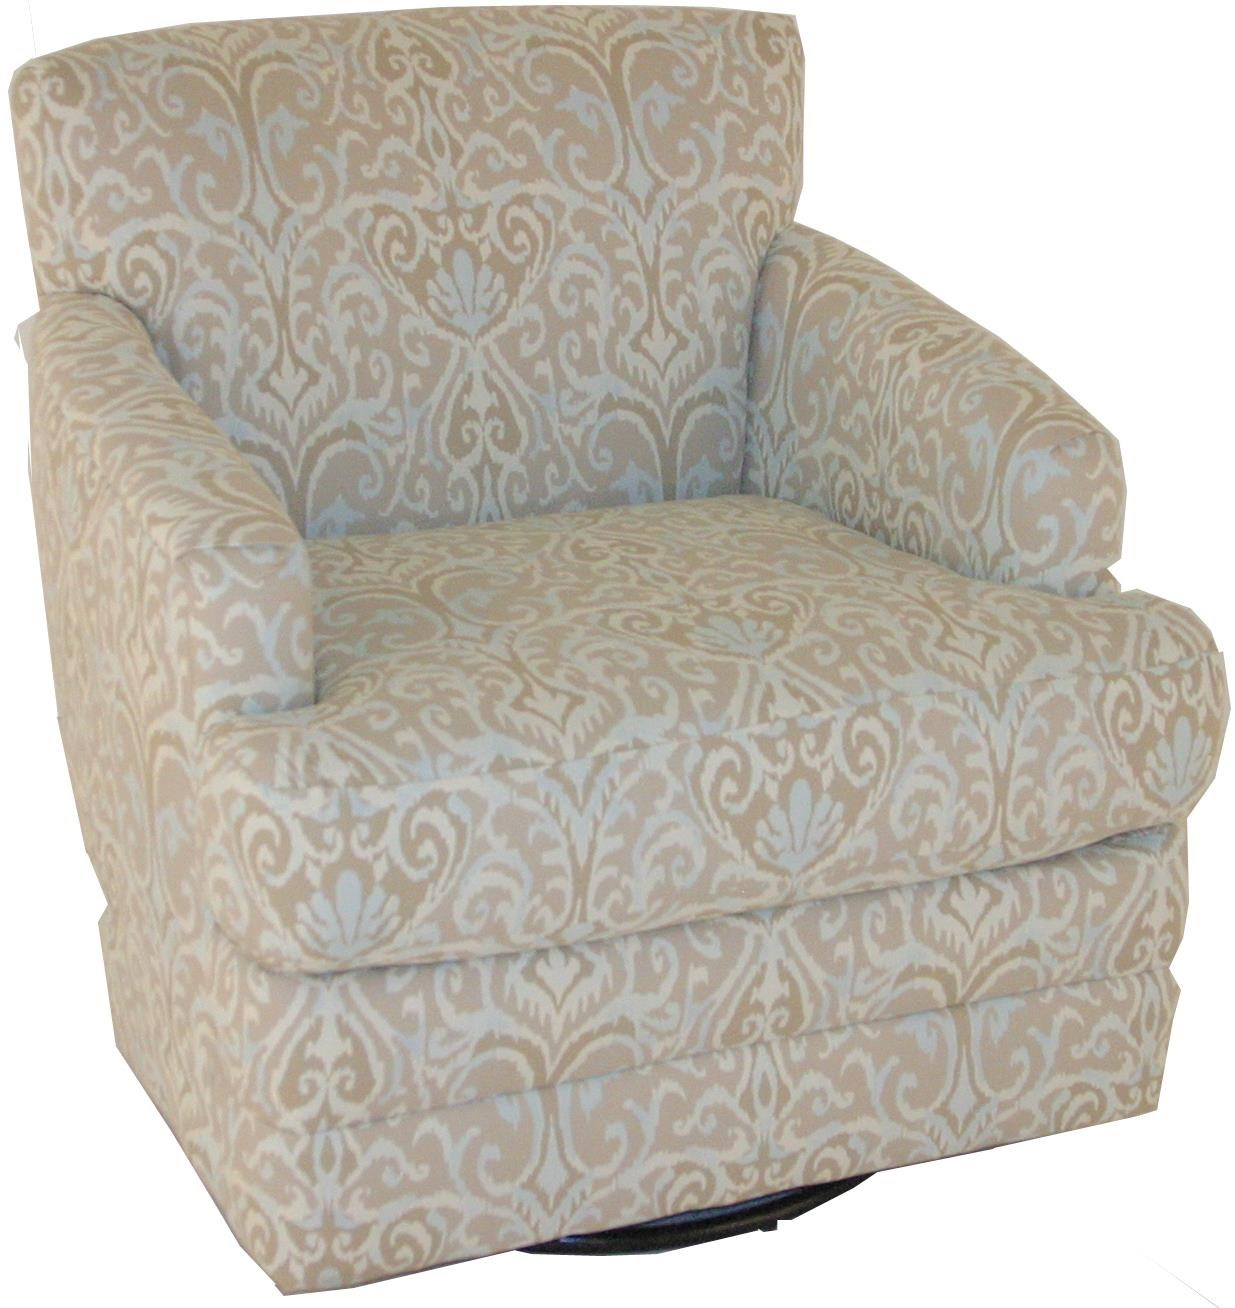 Chairs America Accent Chairs and OttomansTransitional Swivel Rocker  sc 1 st  John V Schultz & Chairs America Accent Chairs and Ottomans 1424SW Transitional Swivel ...